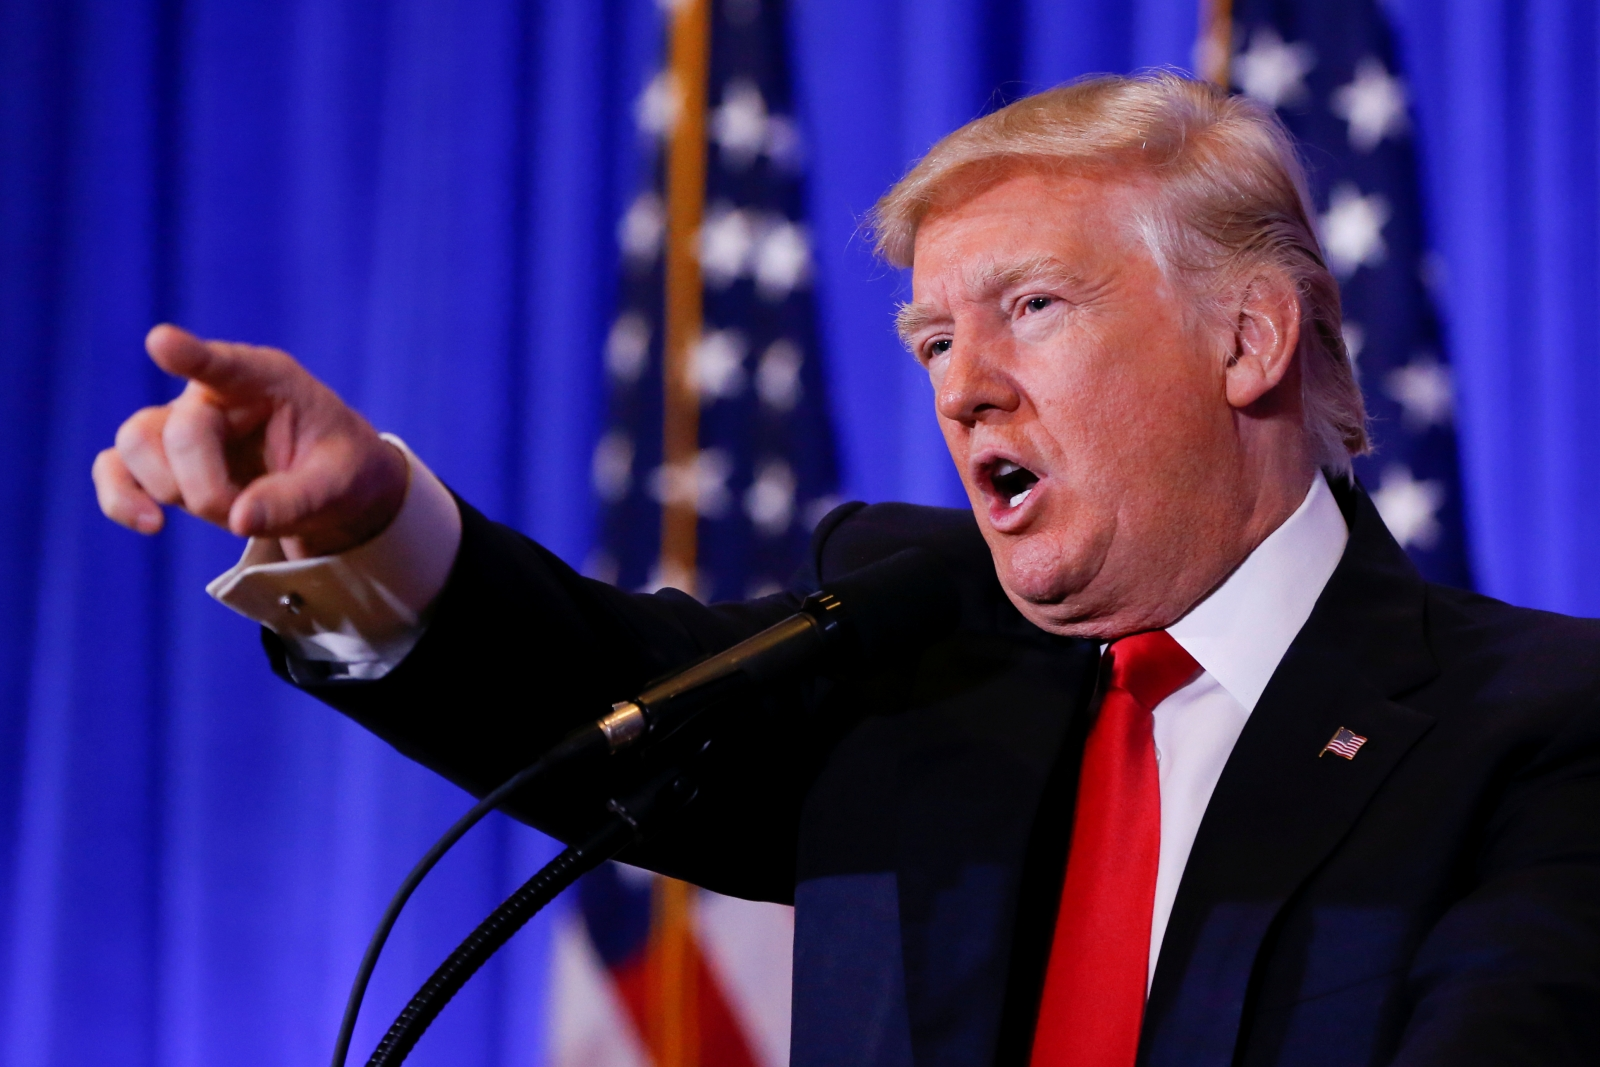 U President-elect Donald Trump speaks at a conference in New York